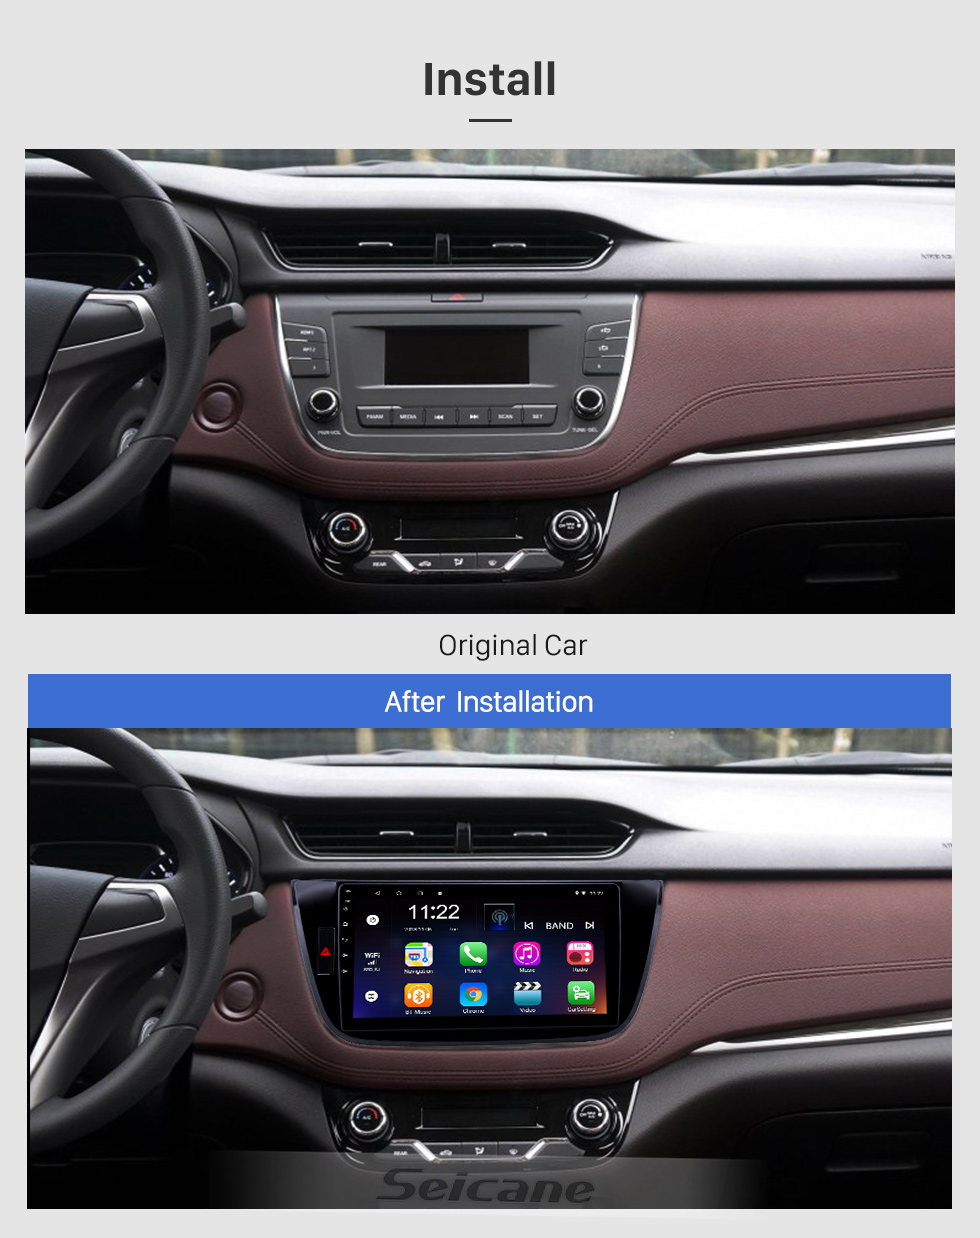 Seicane 10,1 pouces Android 8.1 HD Radio tactile Navigation GPS pour 2017-2018 Changan LingXuan avec support Bluetooth Carplay Mirror Link